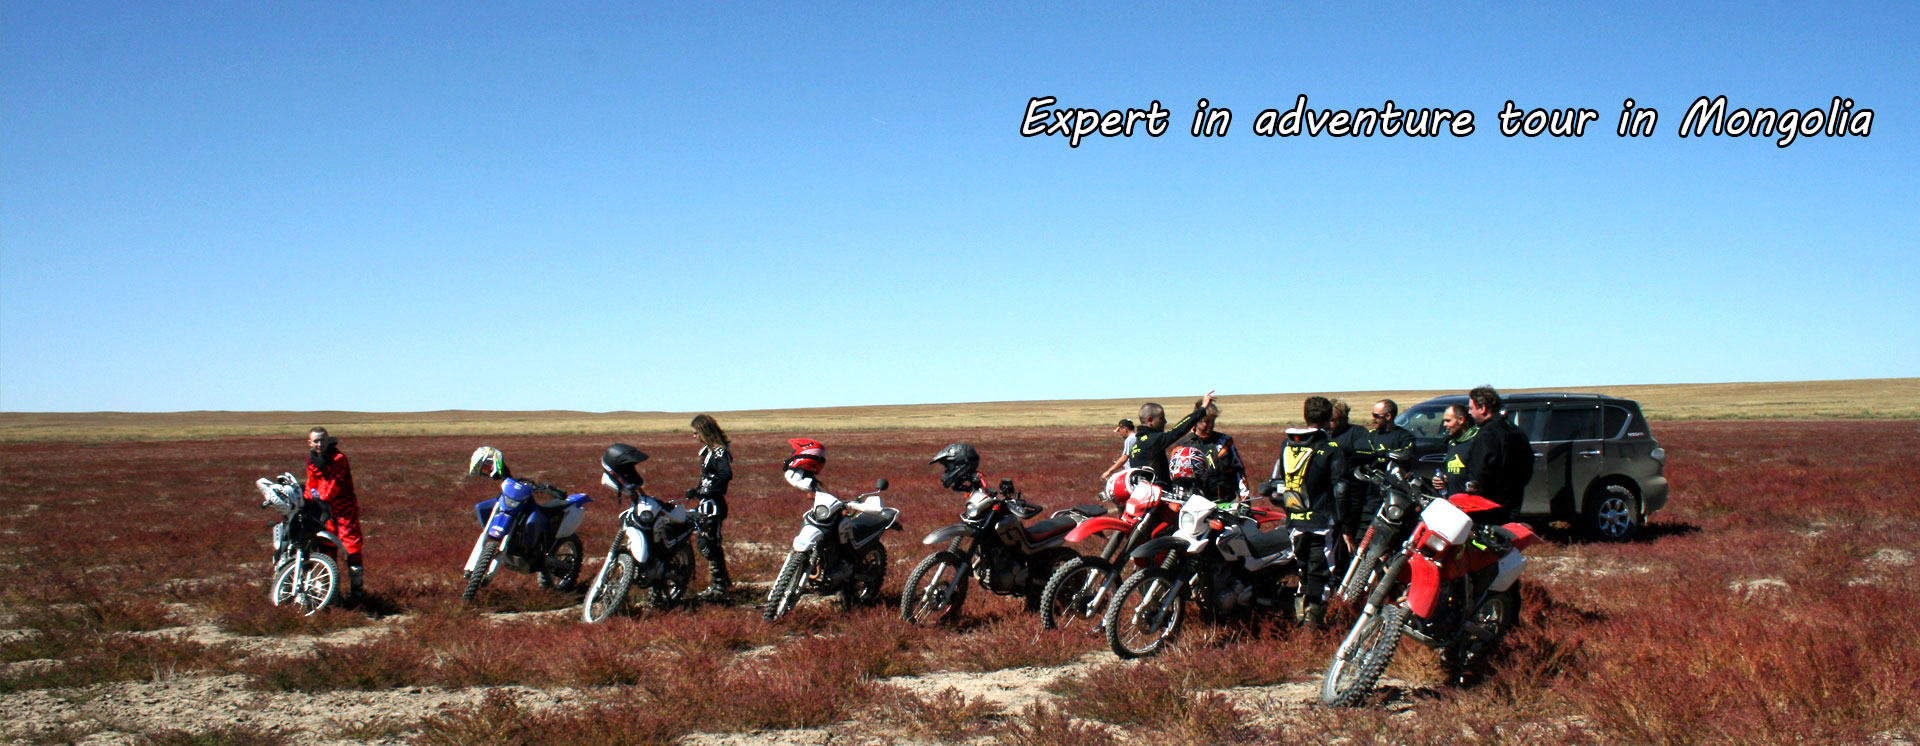 motorcycle-tour-in-steppe-mongolia.jpg